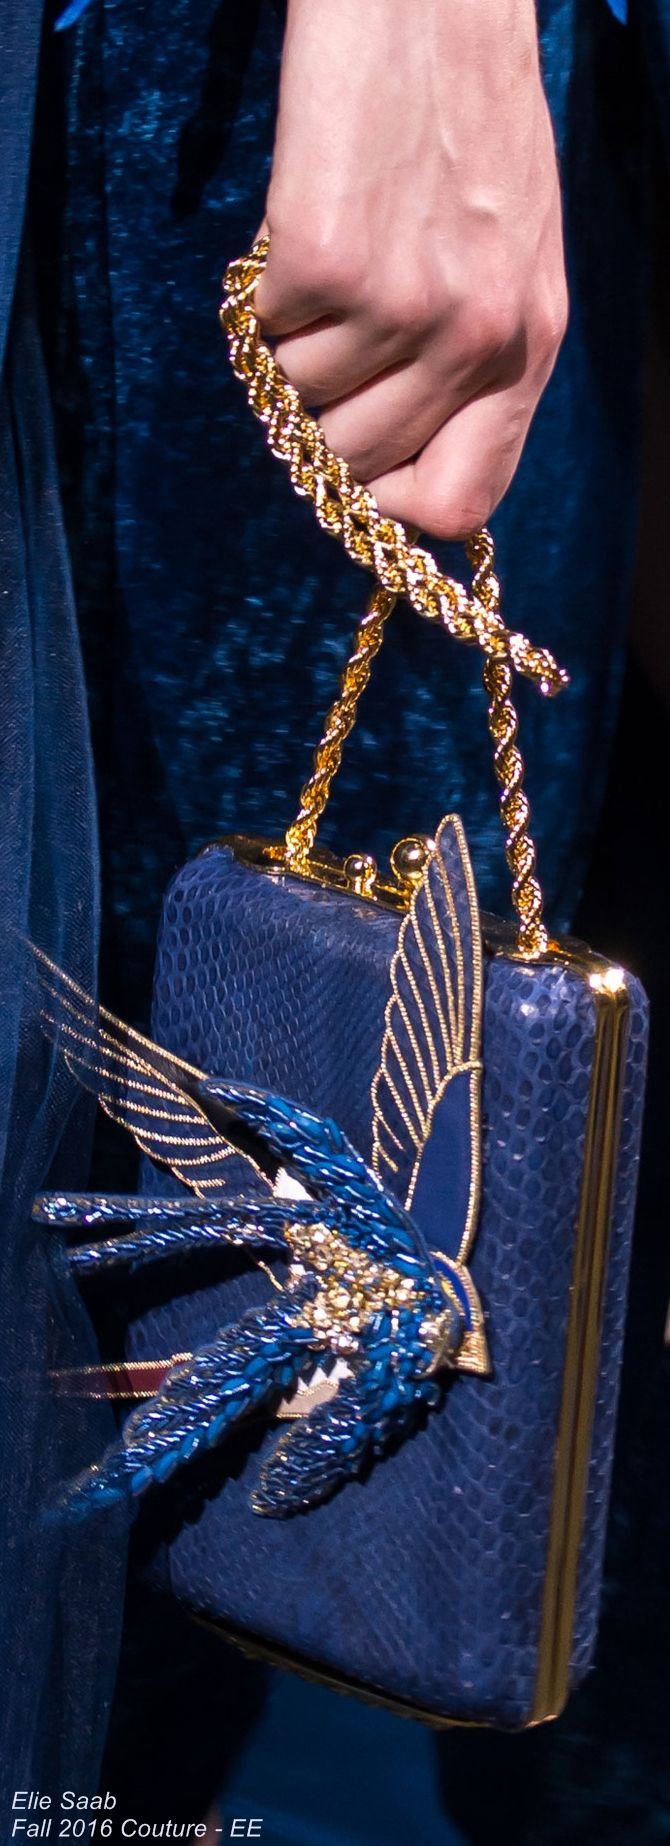 Elie Saab Fall 2016 Couture - EE handbags wallets - amzn.to/2jDeisA Clothing, Shoes & Jewelry - Women - Accessories - Women's Accessories - http://amzn.to/2kHDYlL